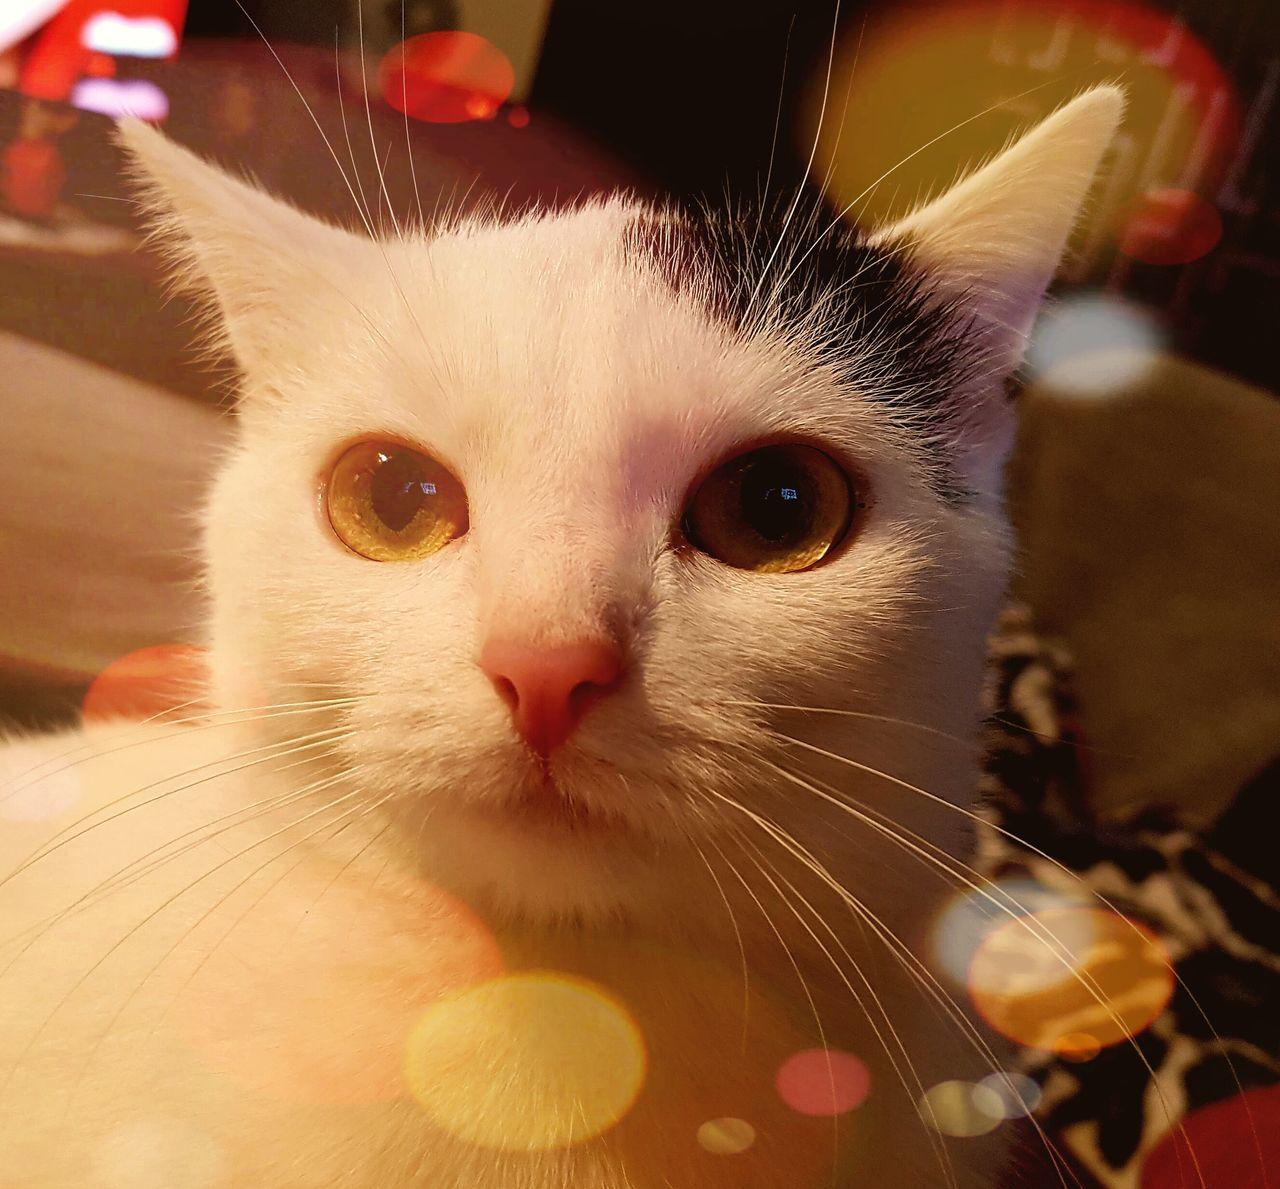 domestic cat, pets, domestic animals, animal themes, whisker, one animal, feline, mammal, indoors, close-up, portrait, looking at camera, focus on foreground, no people, day